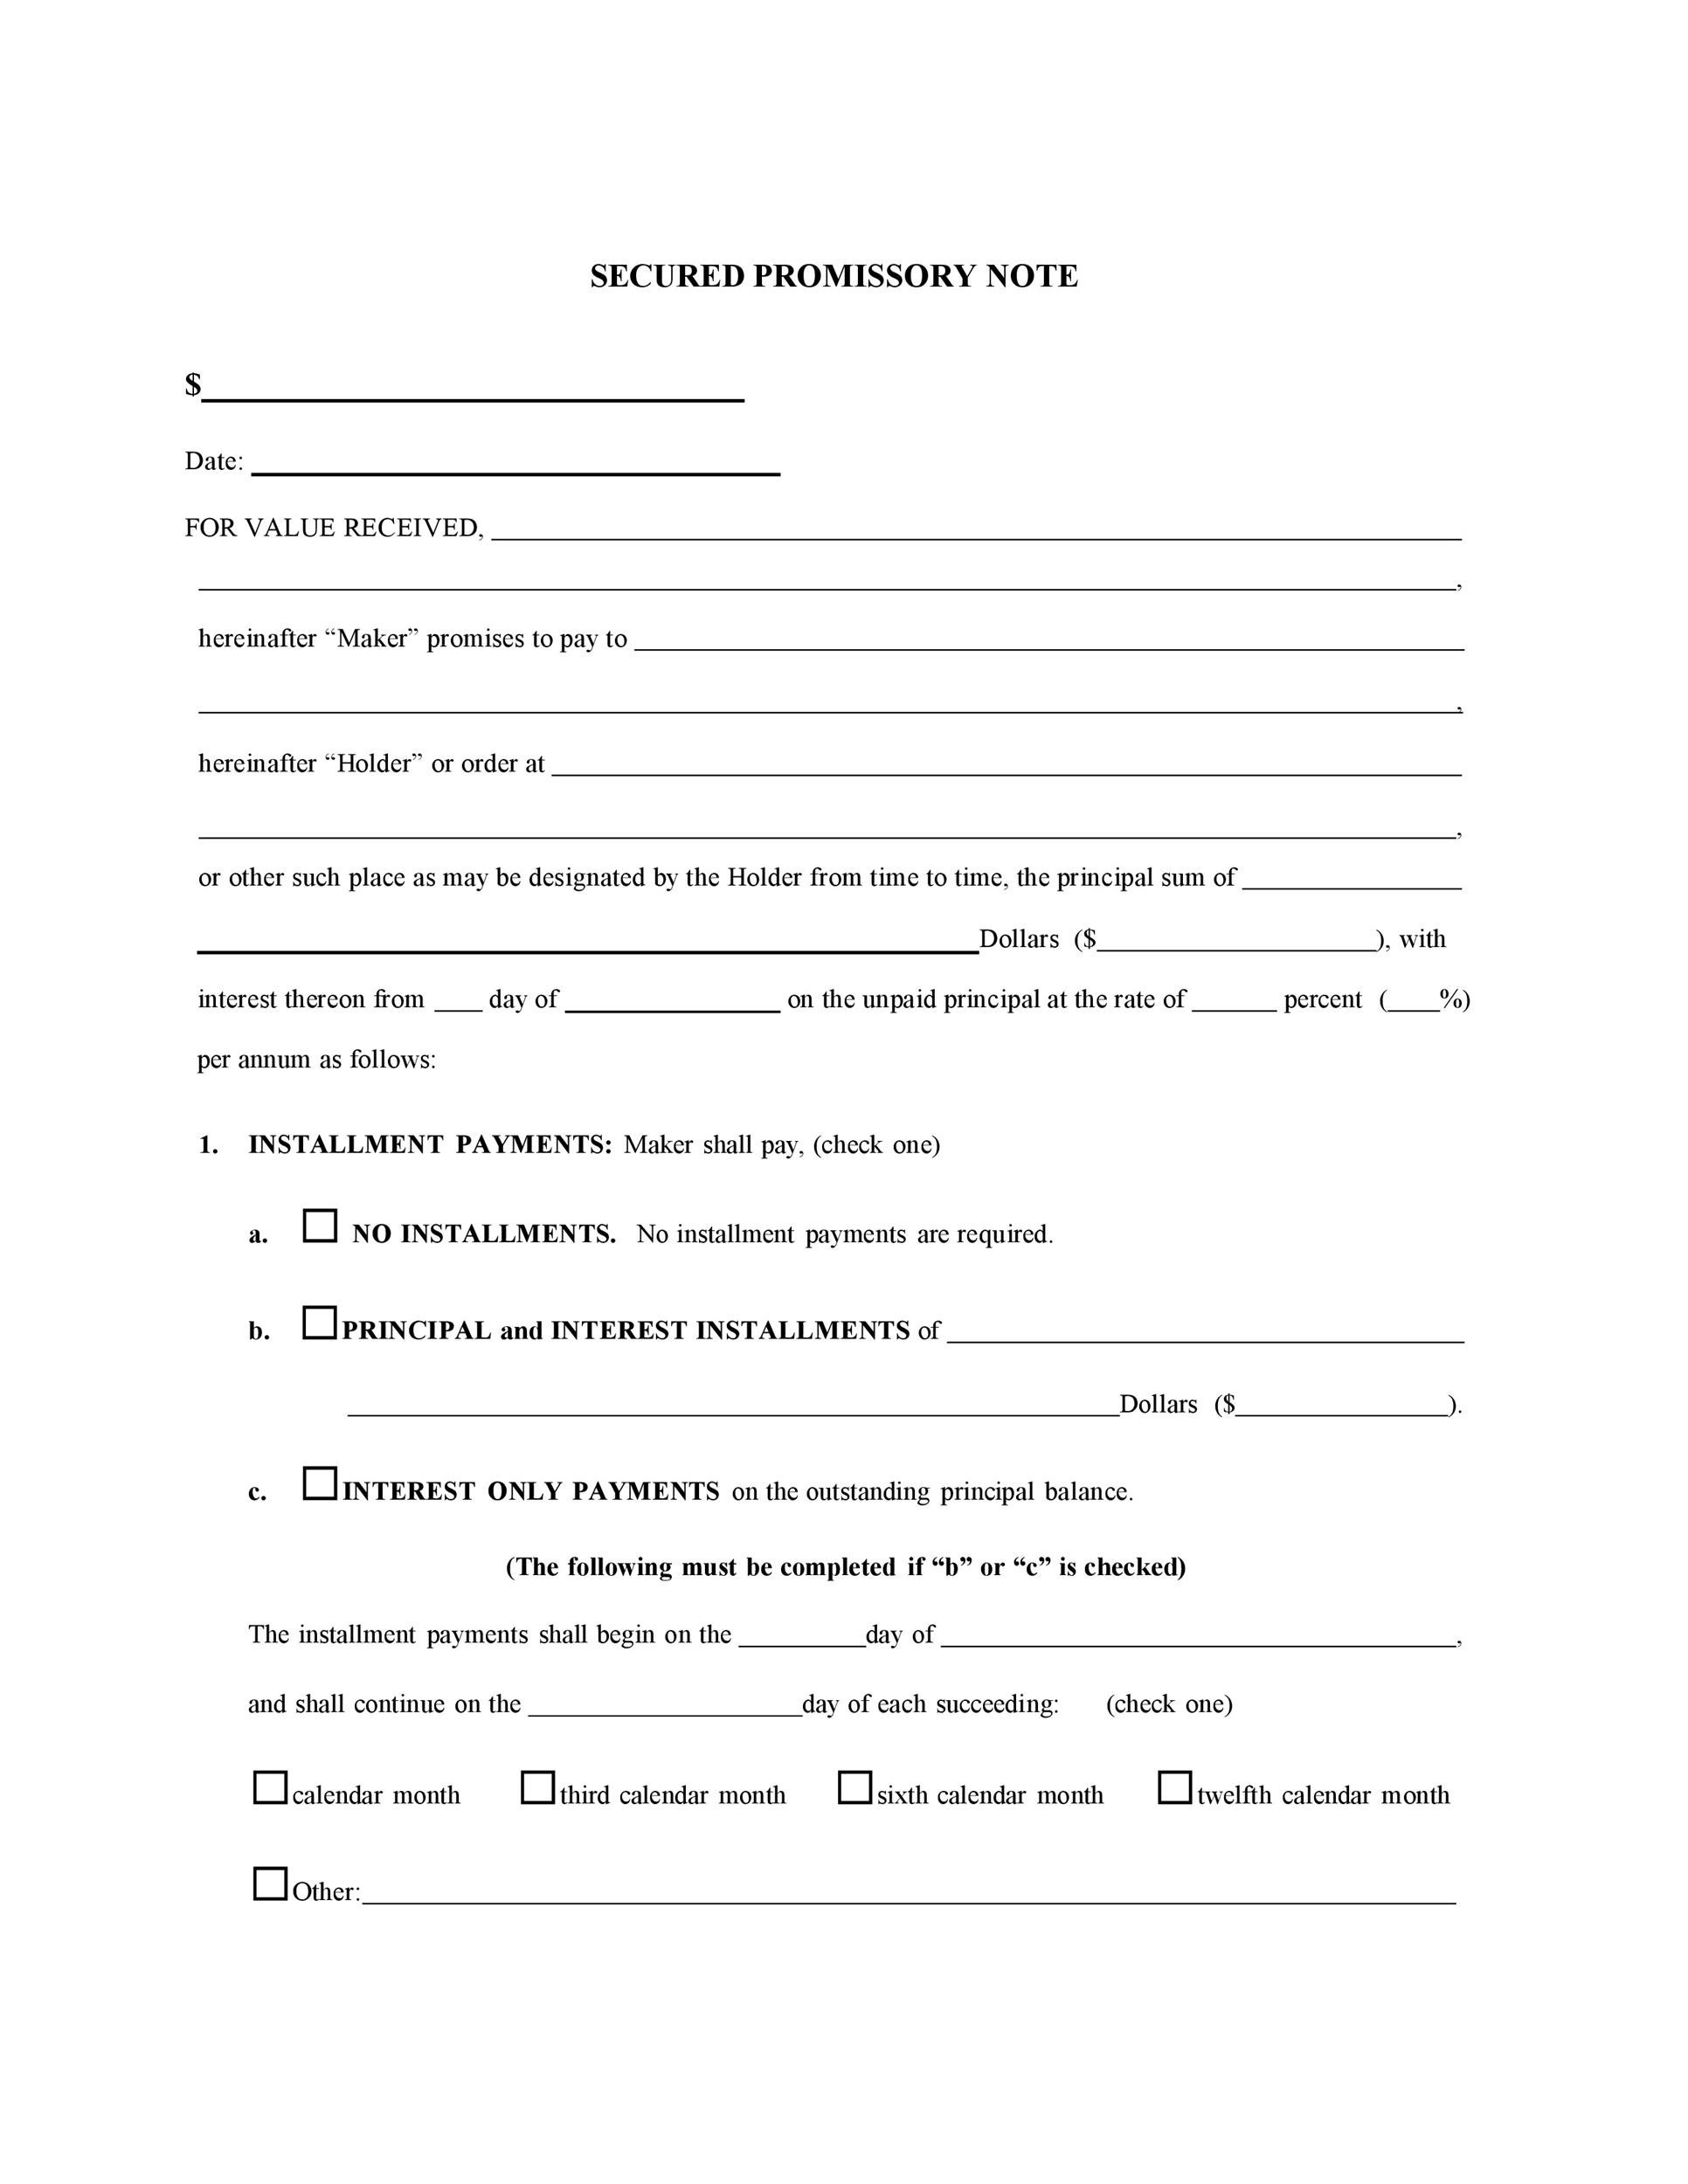 Promissory Note Form Quality Manual Template Free Download 35